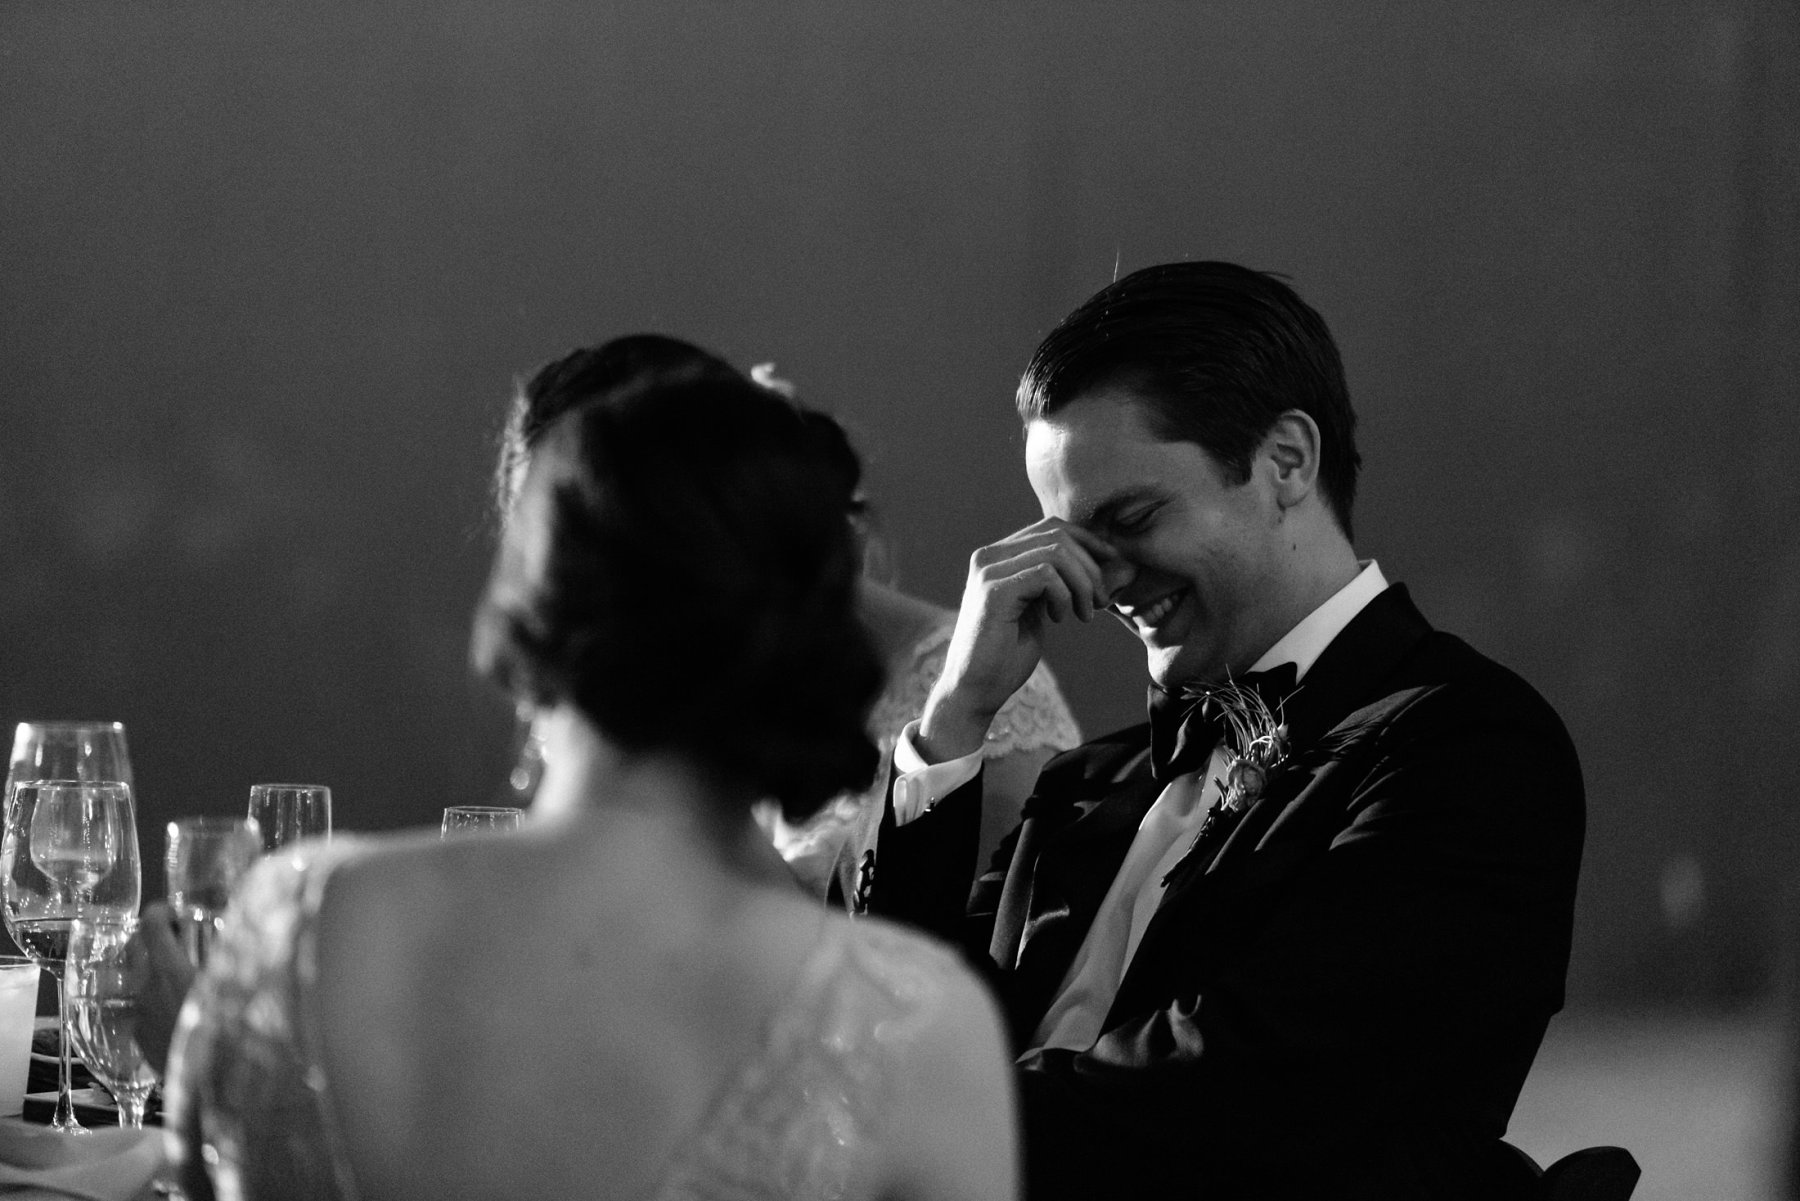 Arizona documentary candid wedding photographer